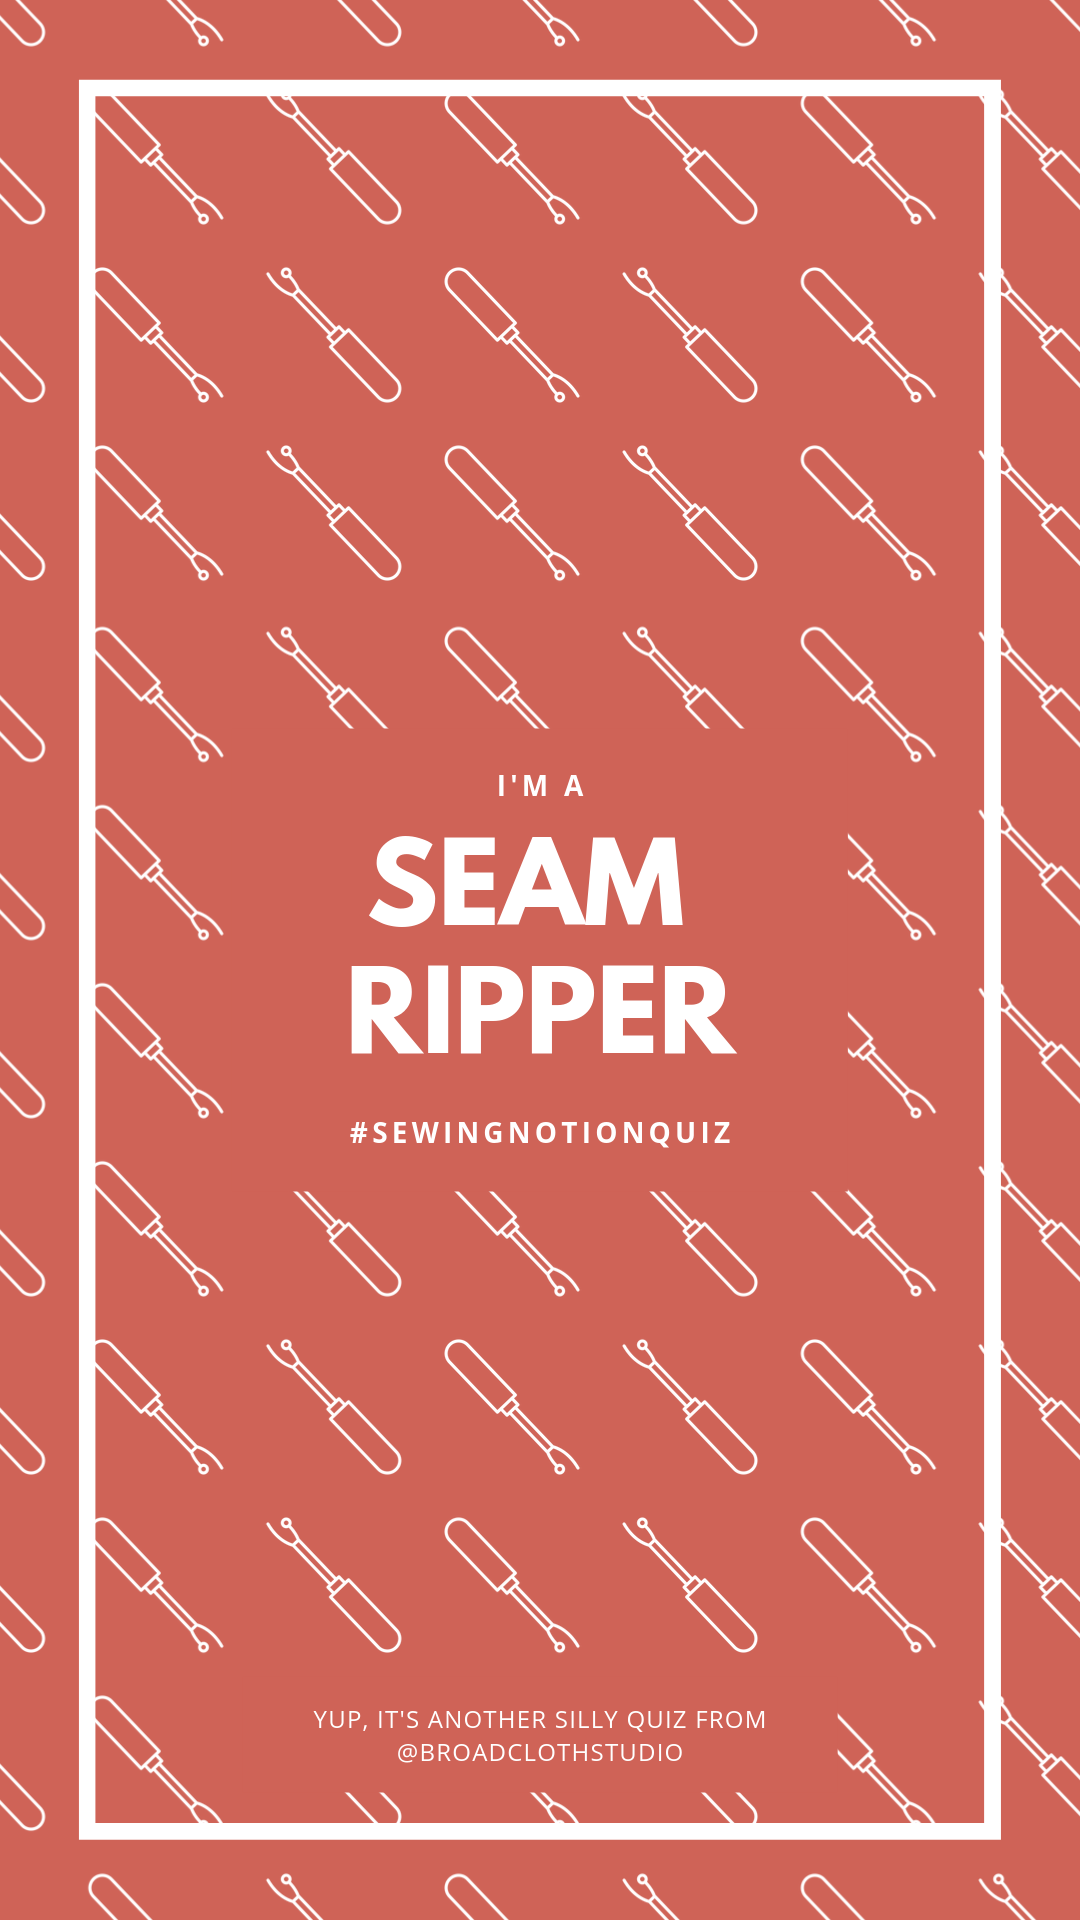 broadcloth studio sewing notions quiz seam ripper ig story